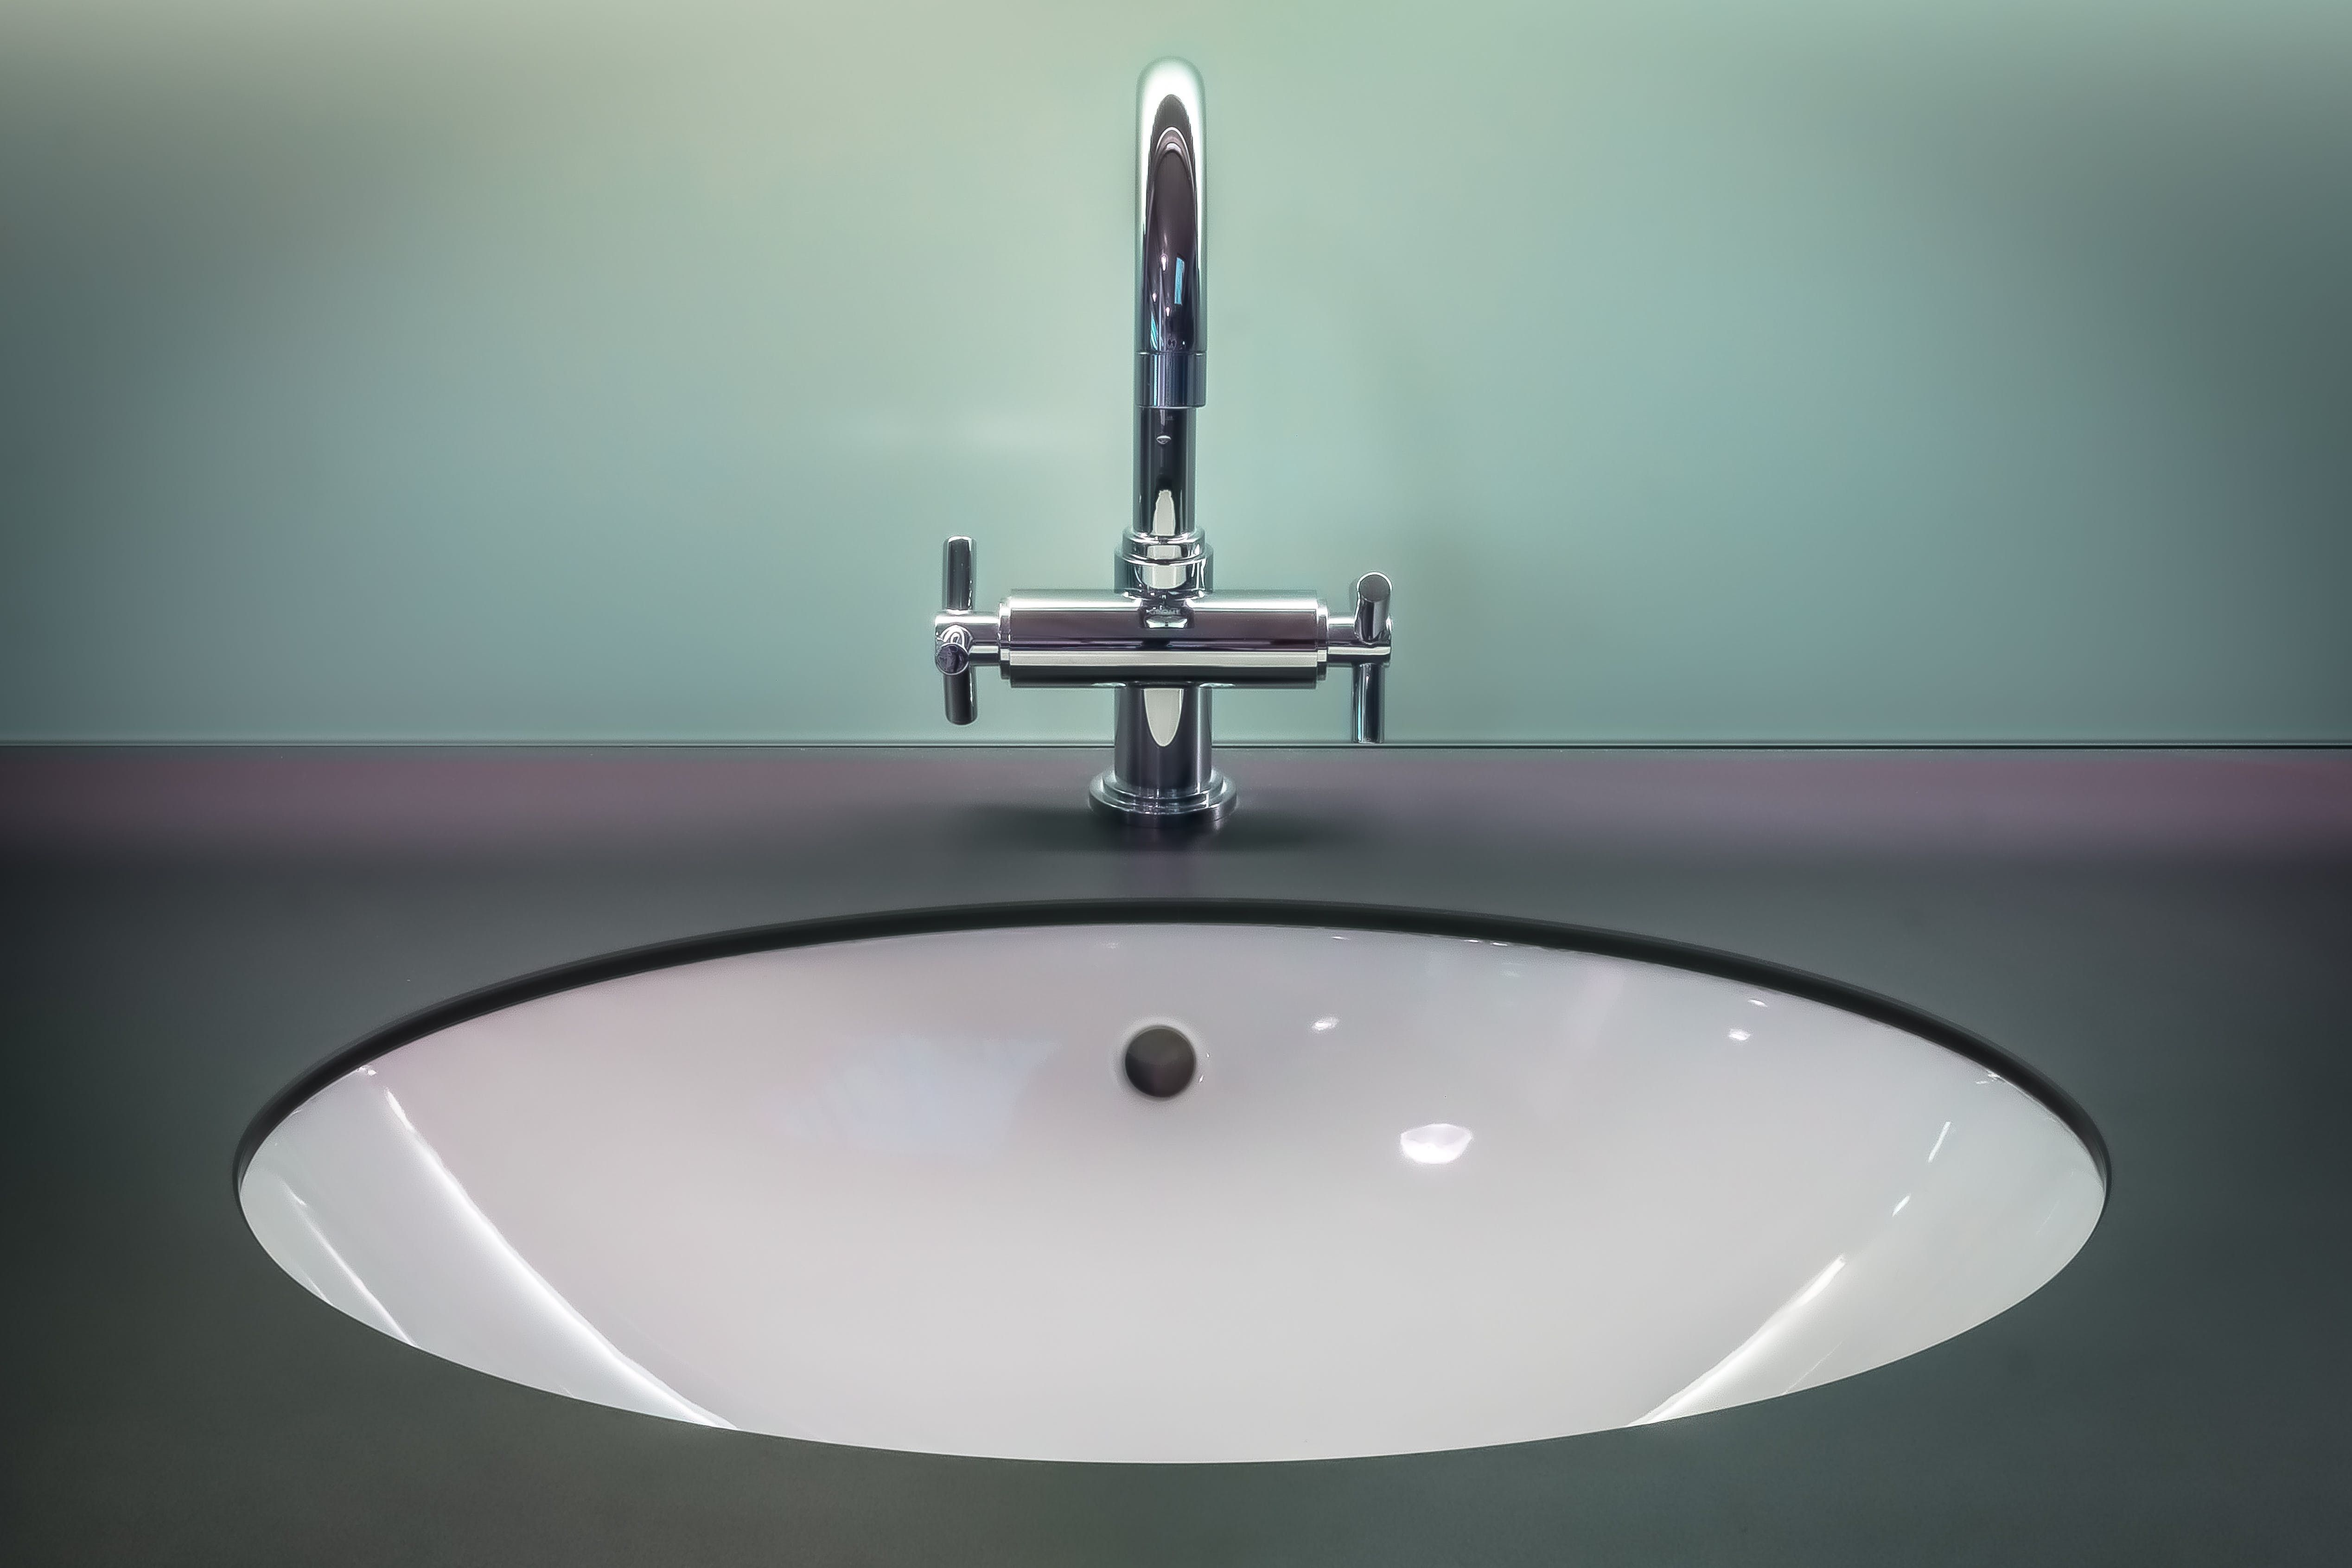 Tips For Home Improvement Do You Want To Revamp Your Home Kitchen But Without Replacing Everything In It By Mer In 2020 Bathroom Cleaning Sink Bathroom Remodel Cost